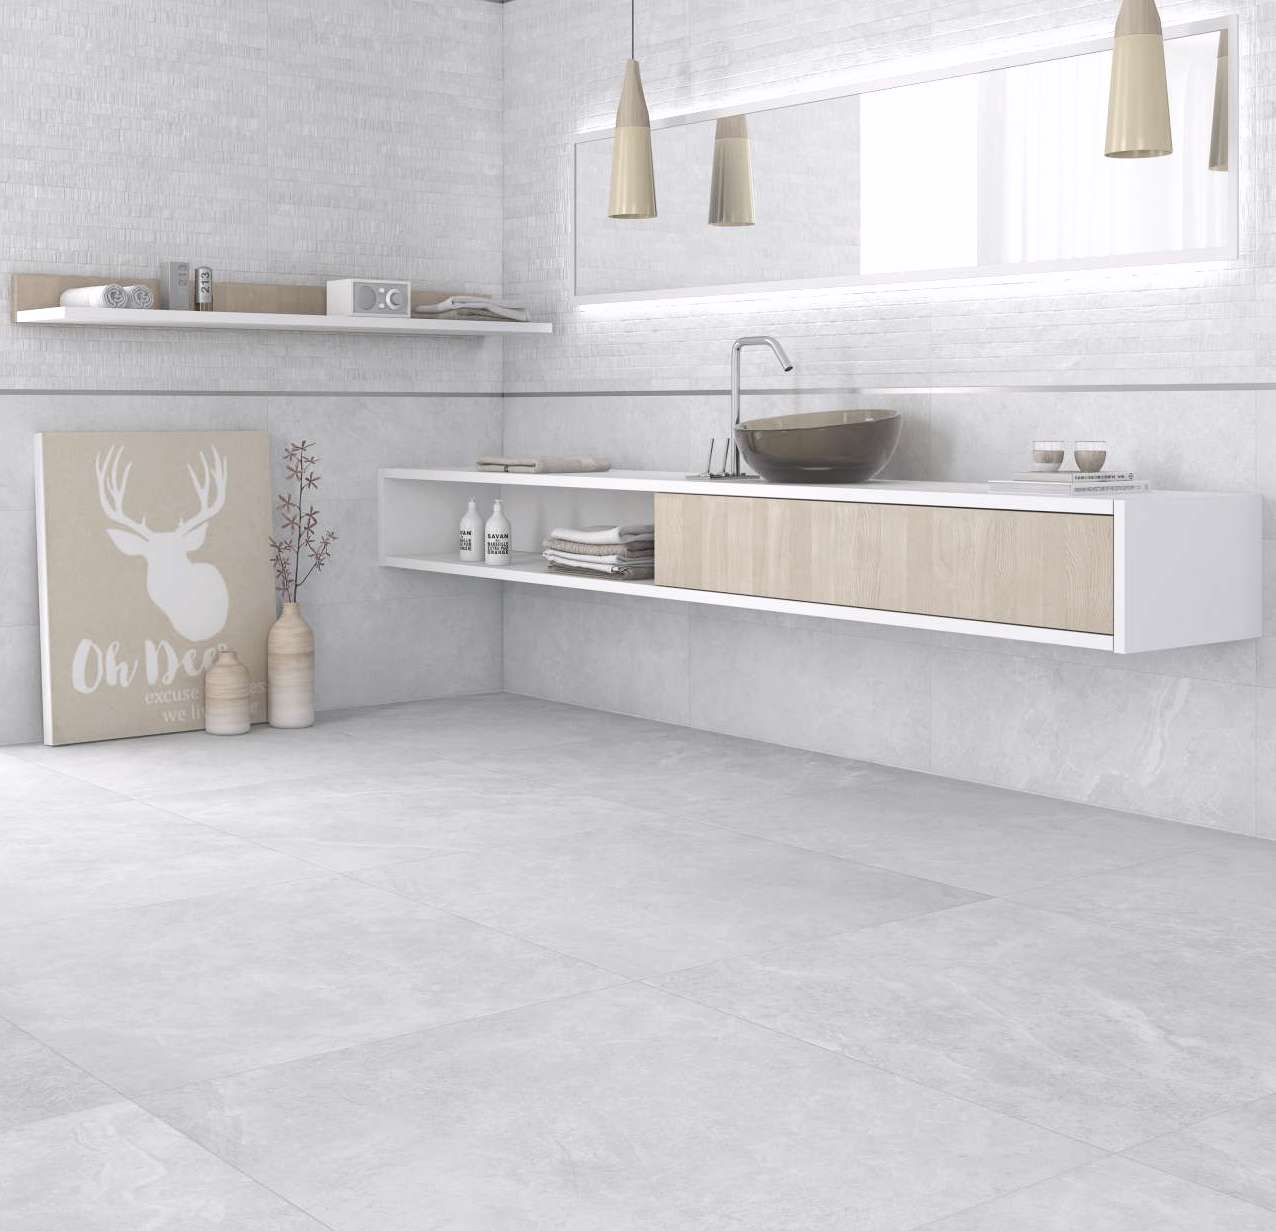 Kitchen Floor Tiles Sydney Trends In Bathroom Wall And Floor Tiles Sydney